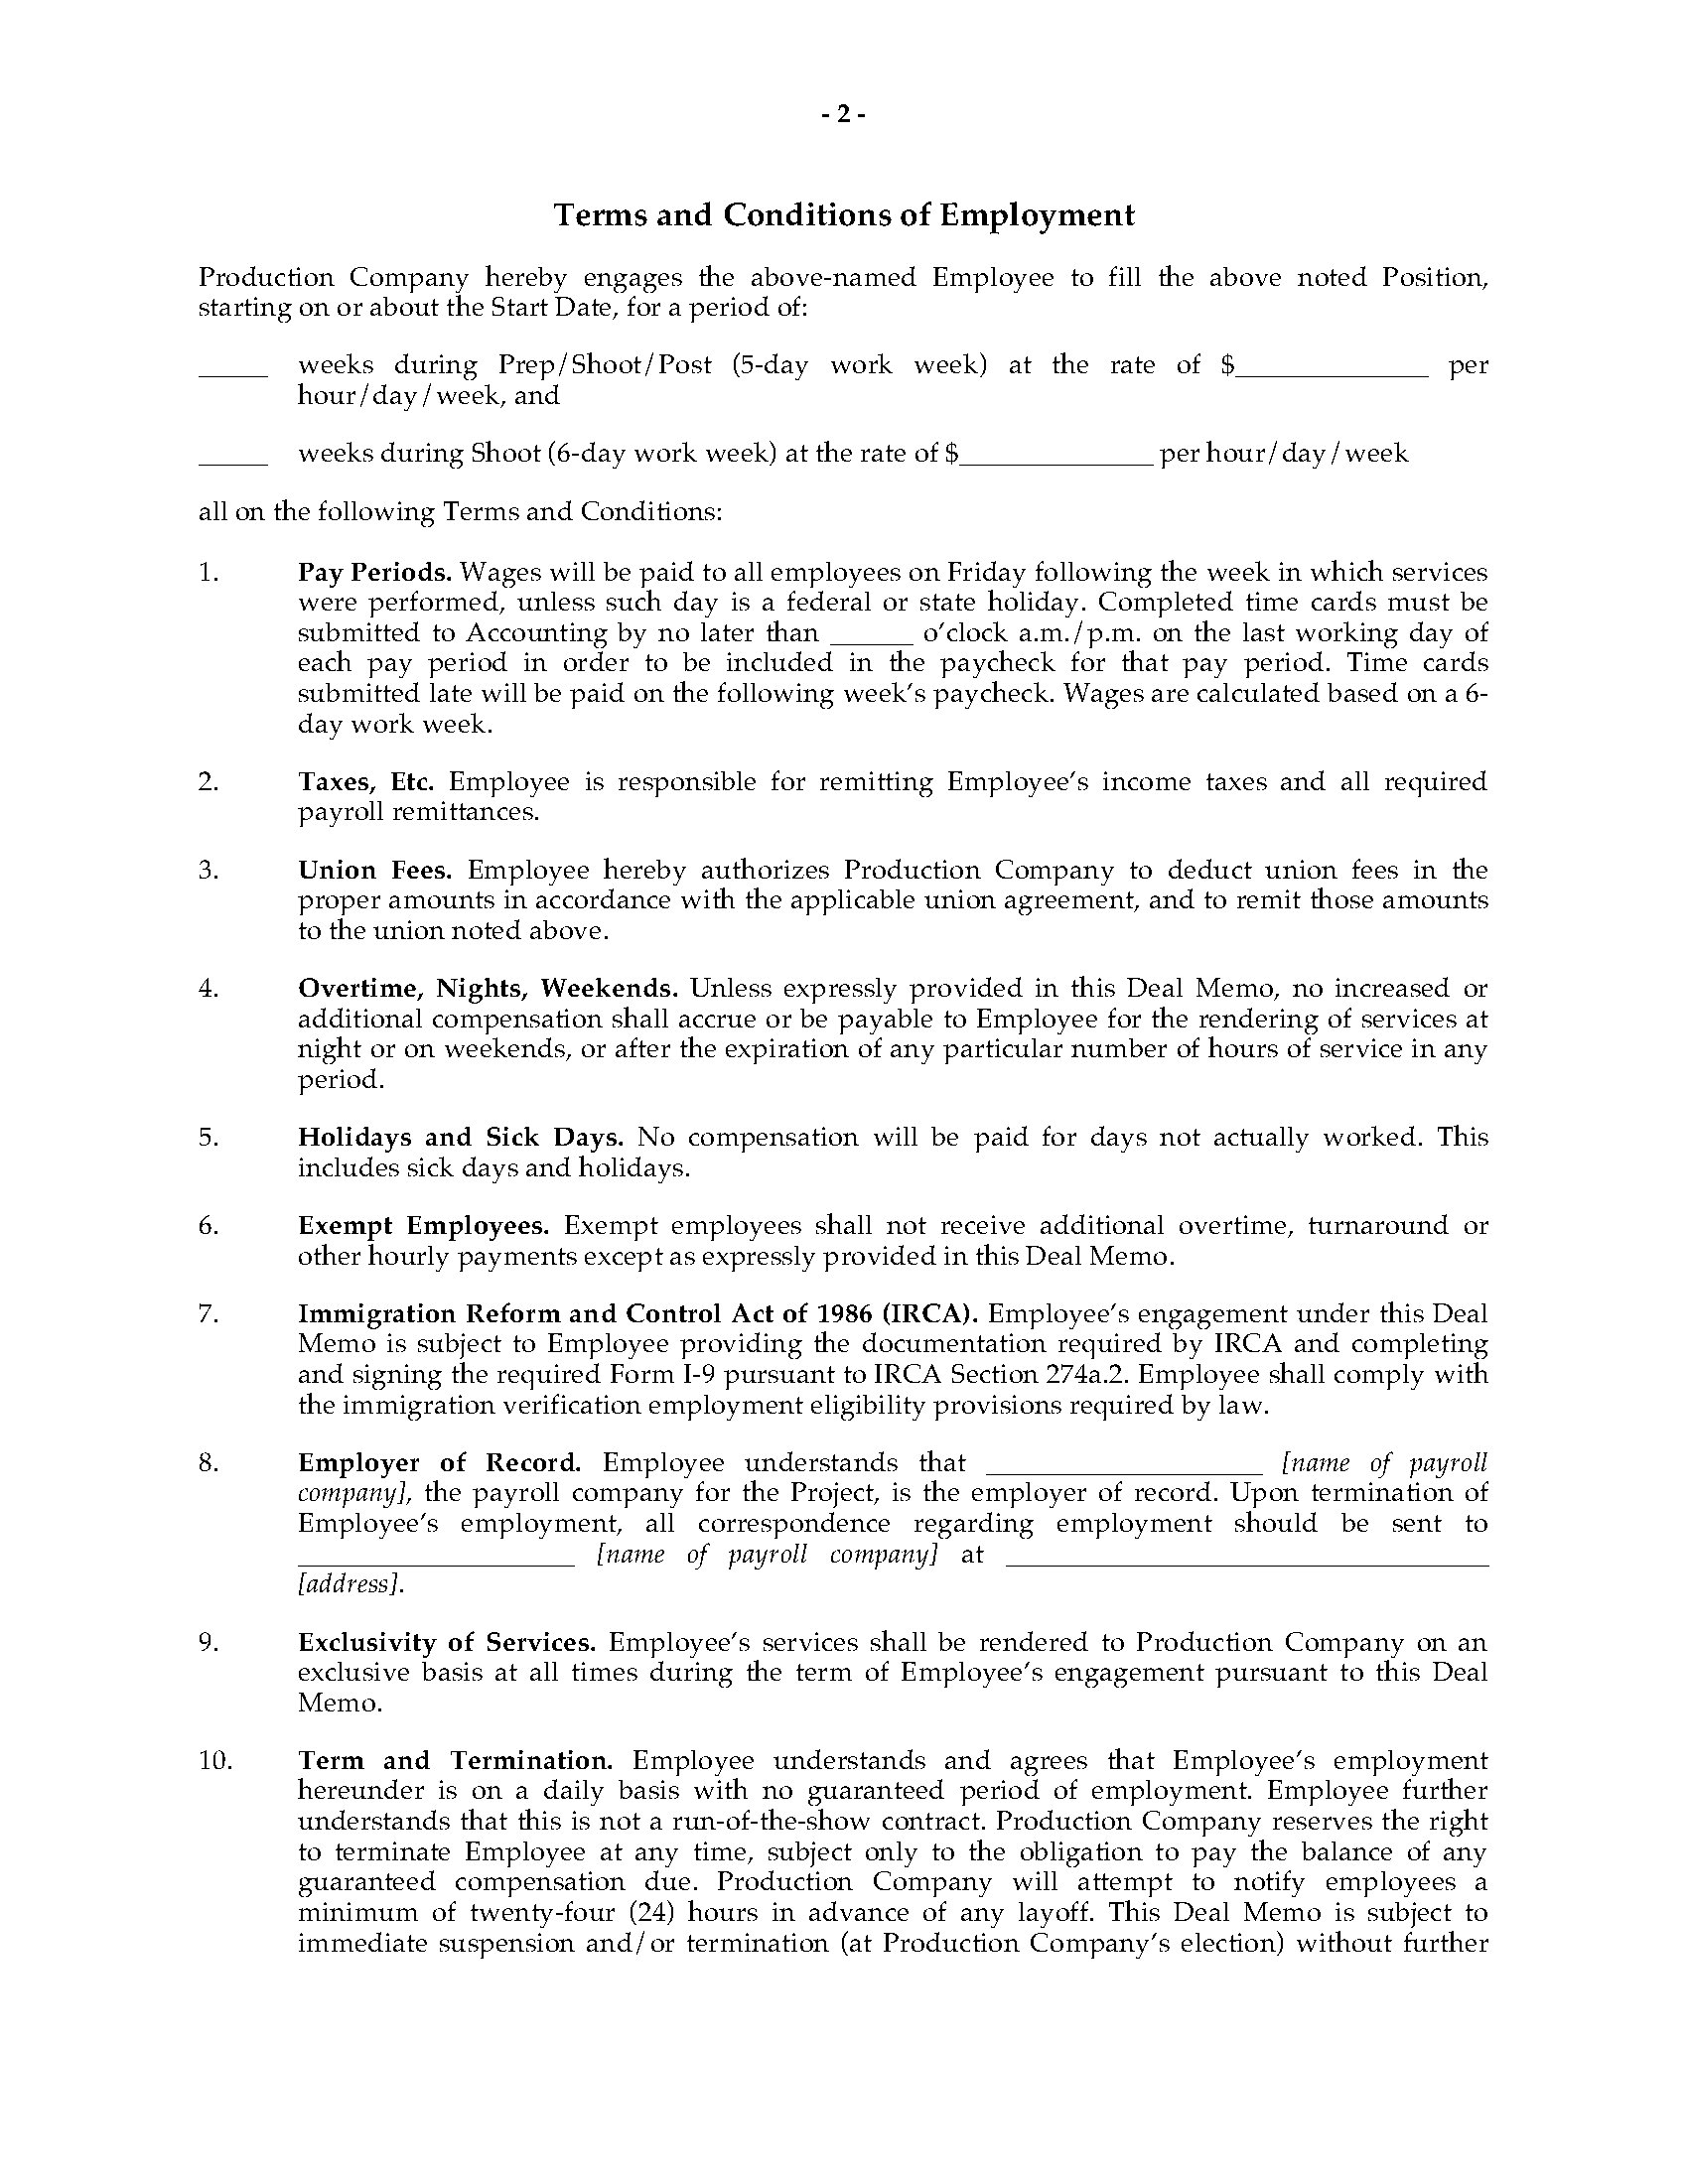 USA Crew Deal Memo for Movie or TV Production | Legal Forms and ...